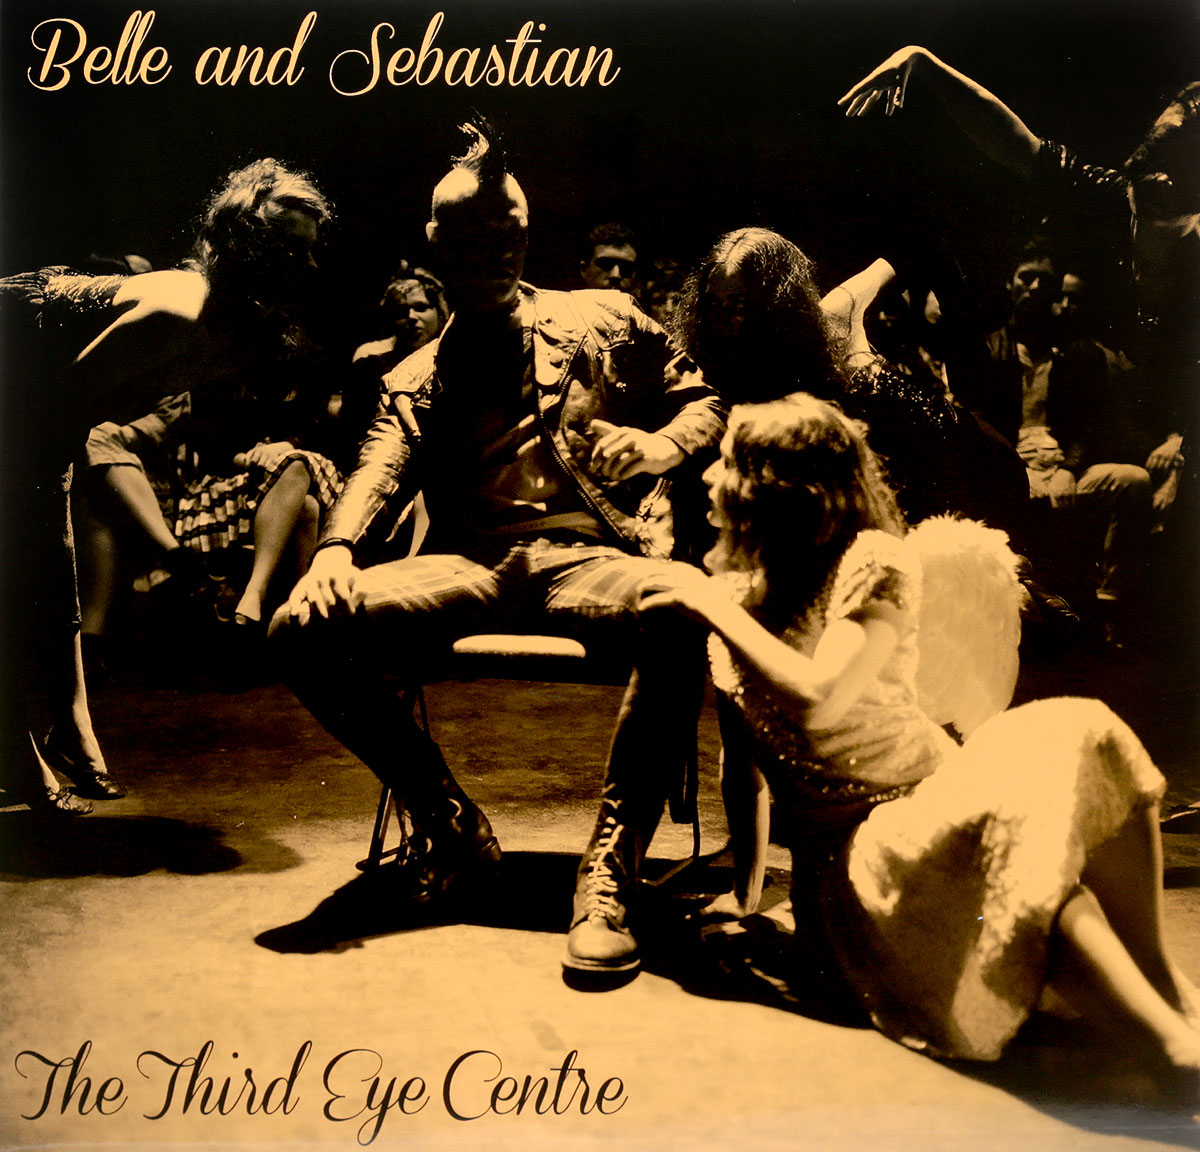 Belle & Sebastian And Sebastian. The Third Eye Centre (2 LP)